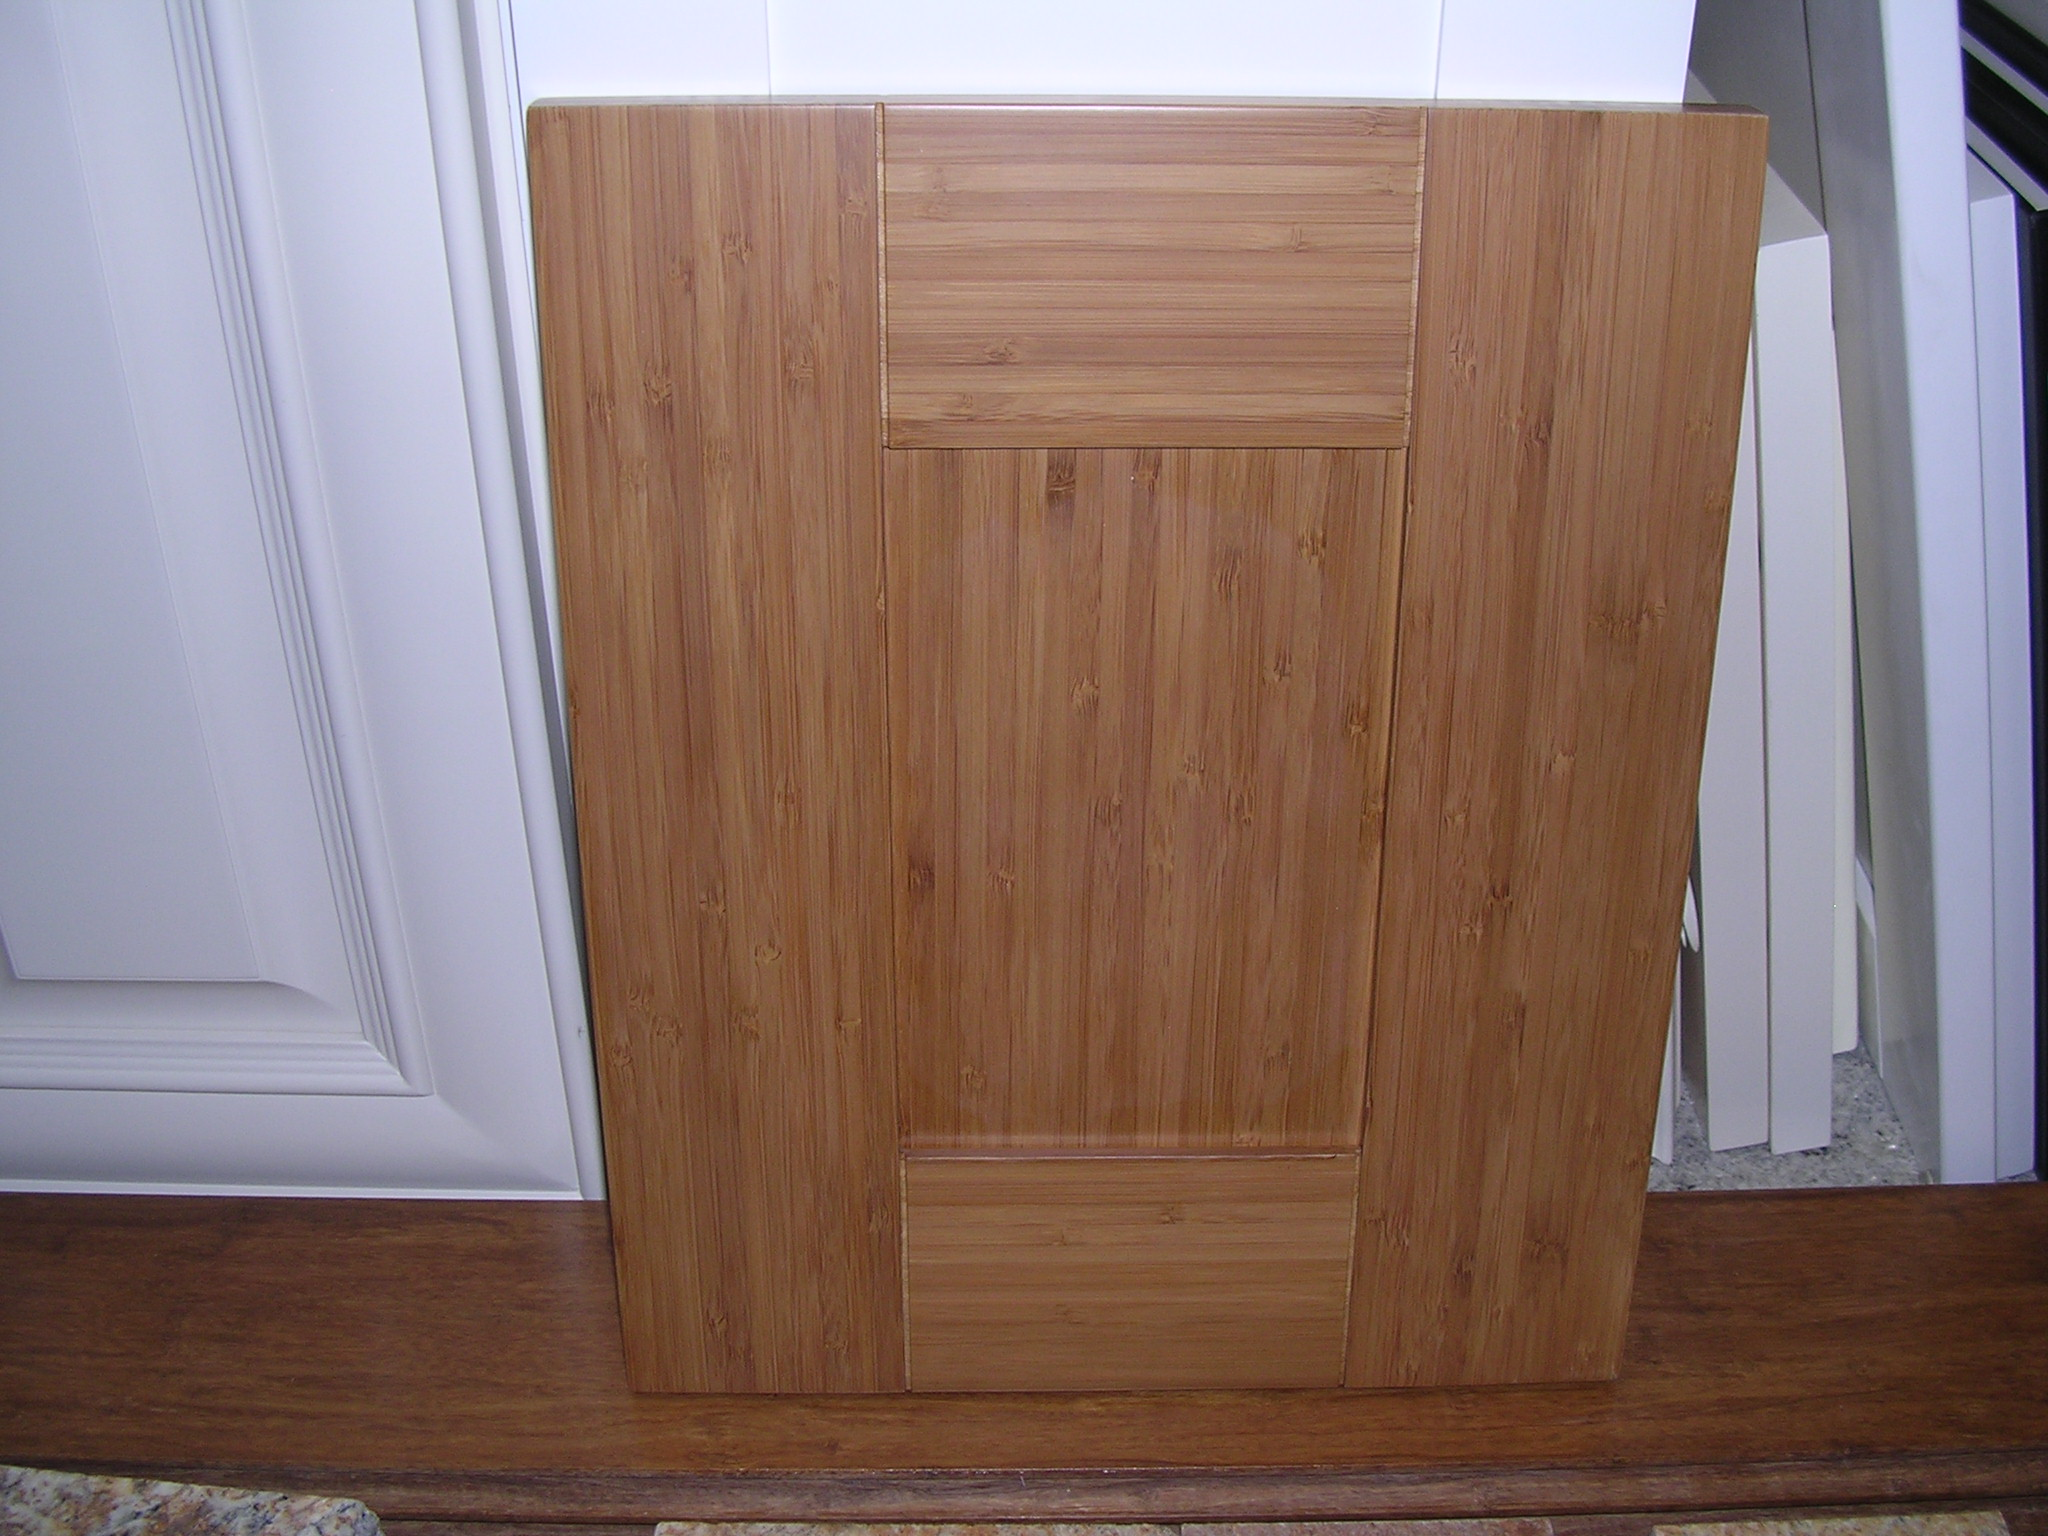 4P CONTEMPORAY bamboo kitchen cabinets Model 4P Bamboo Shaker door Kitchen Cabinets Photo Album